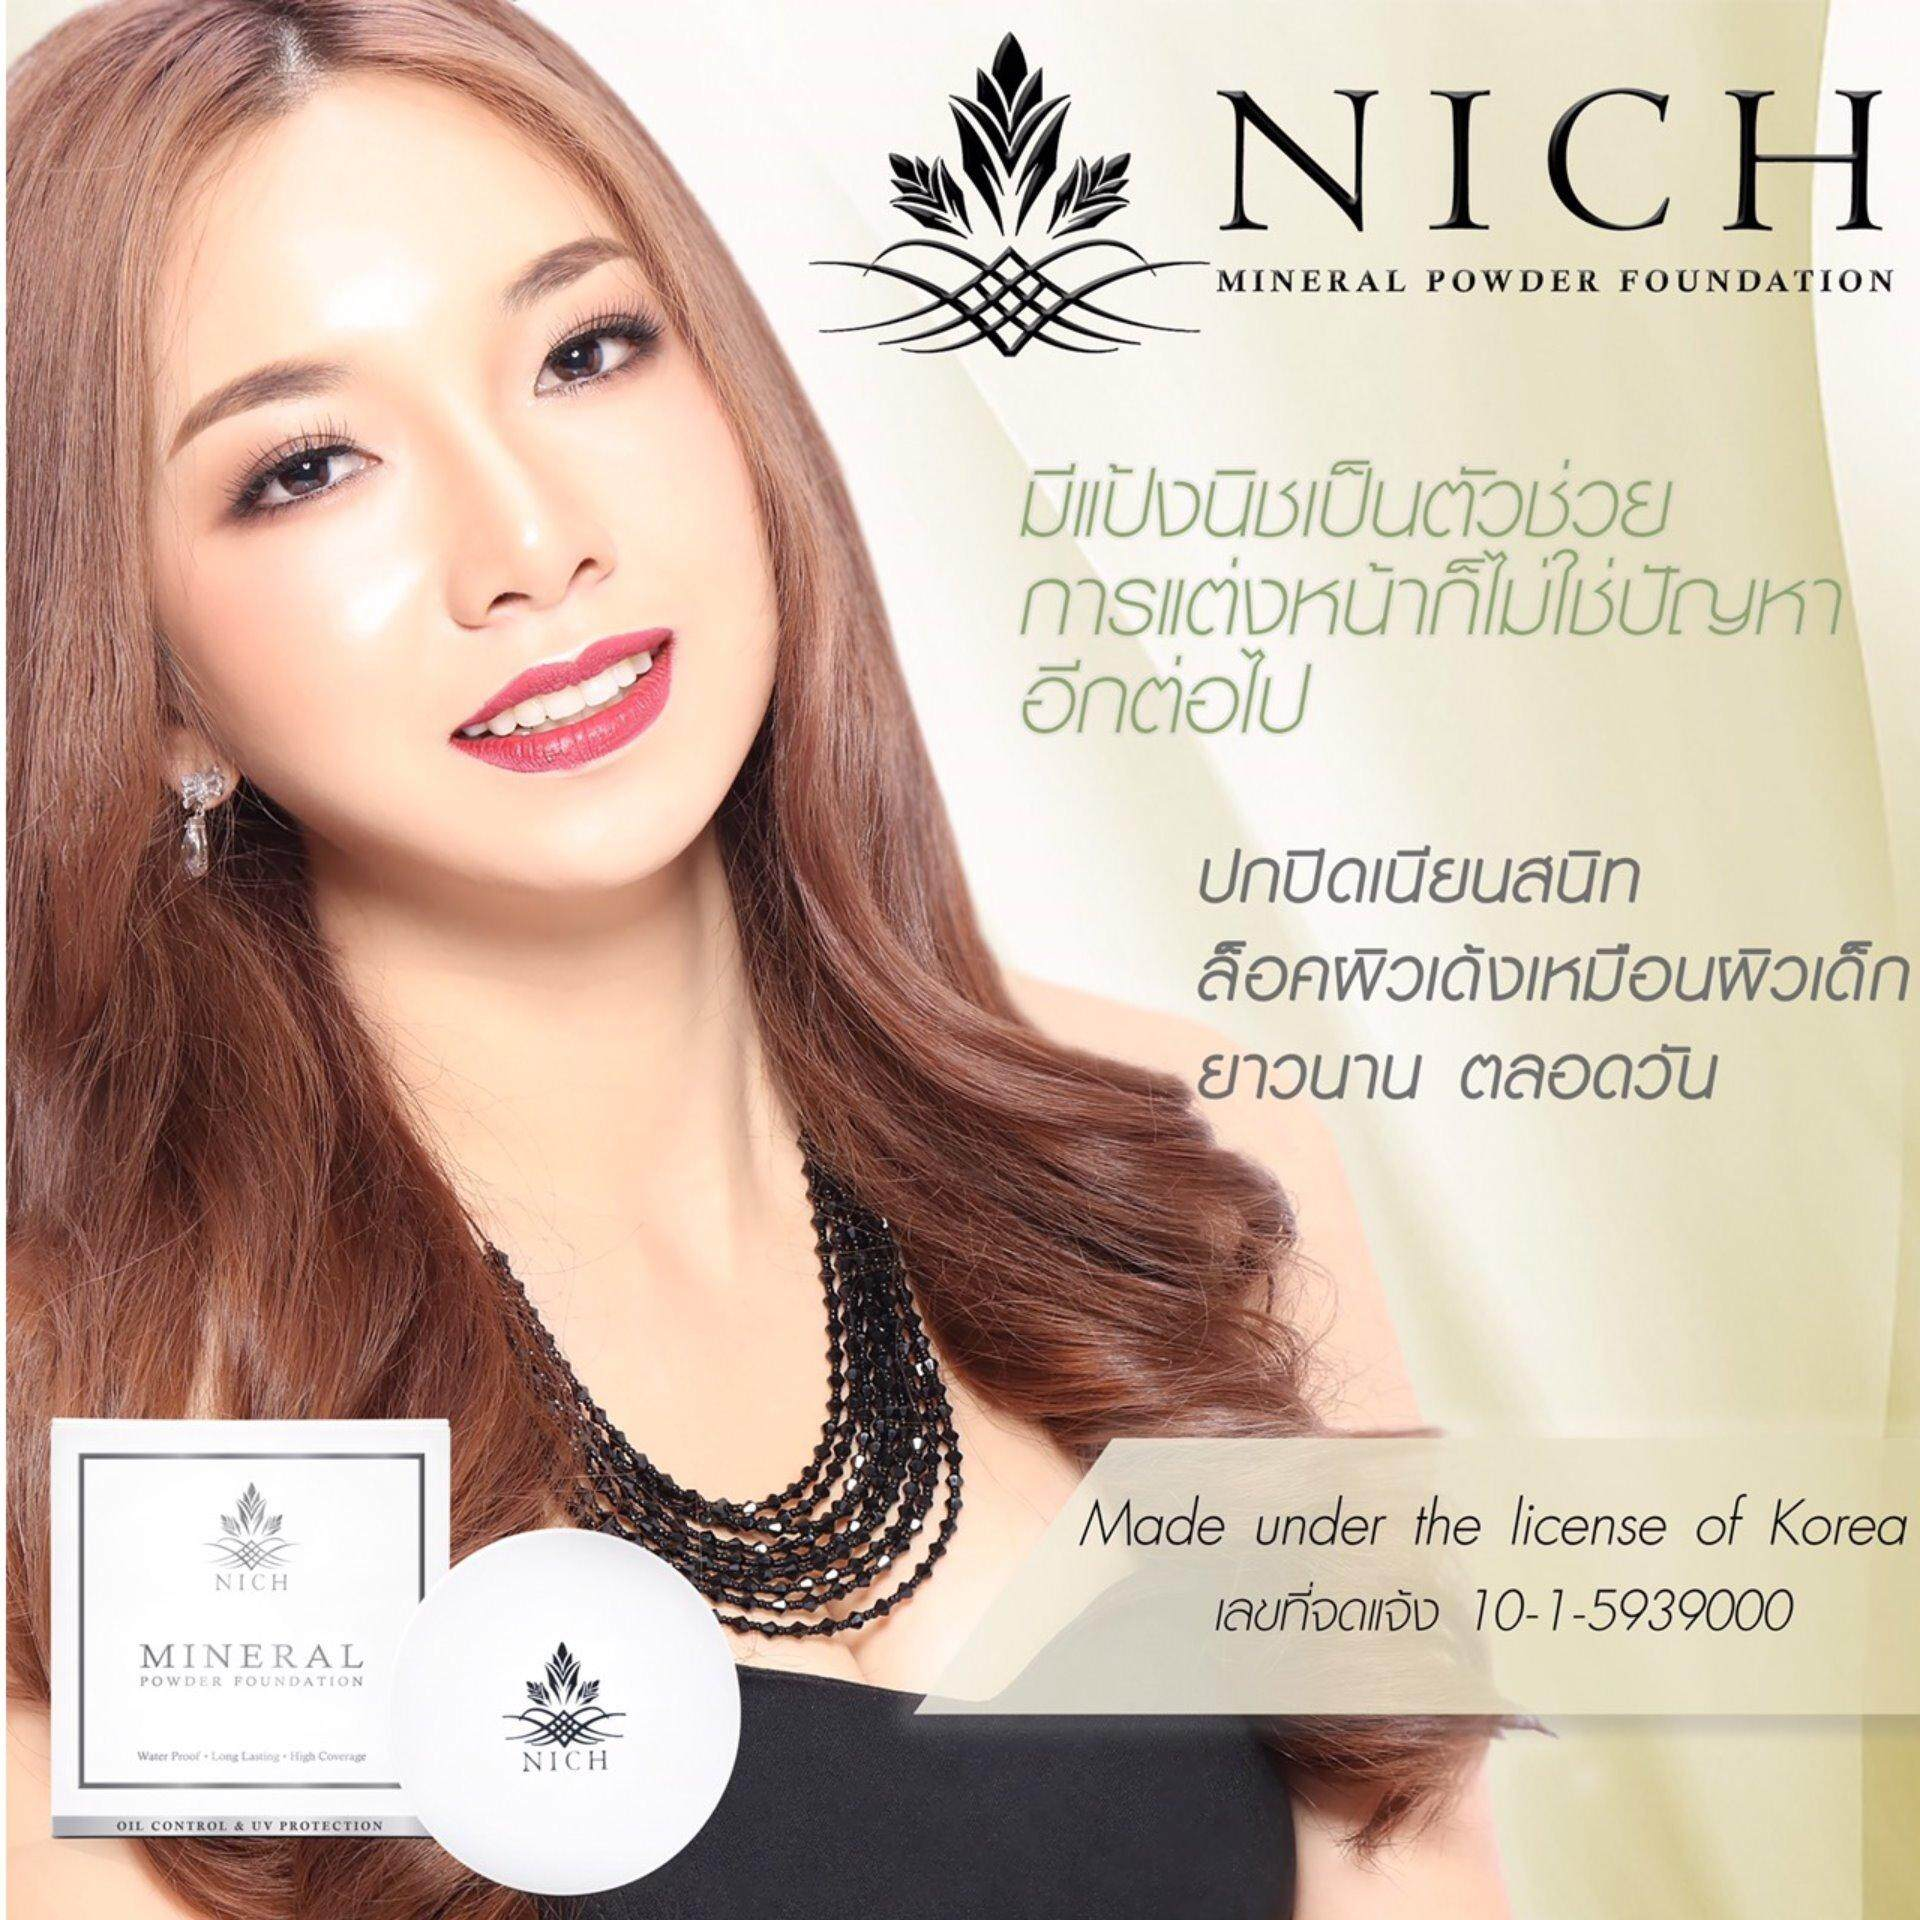 NICH Mineral Powder Foundation (#02 Natural Beige)